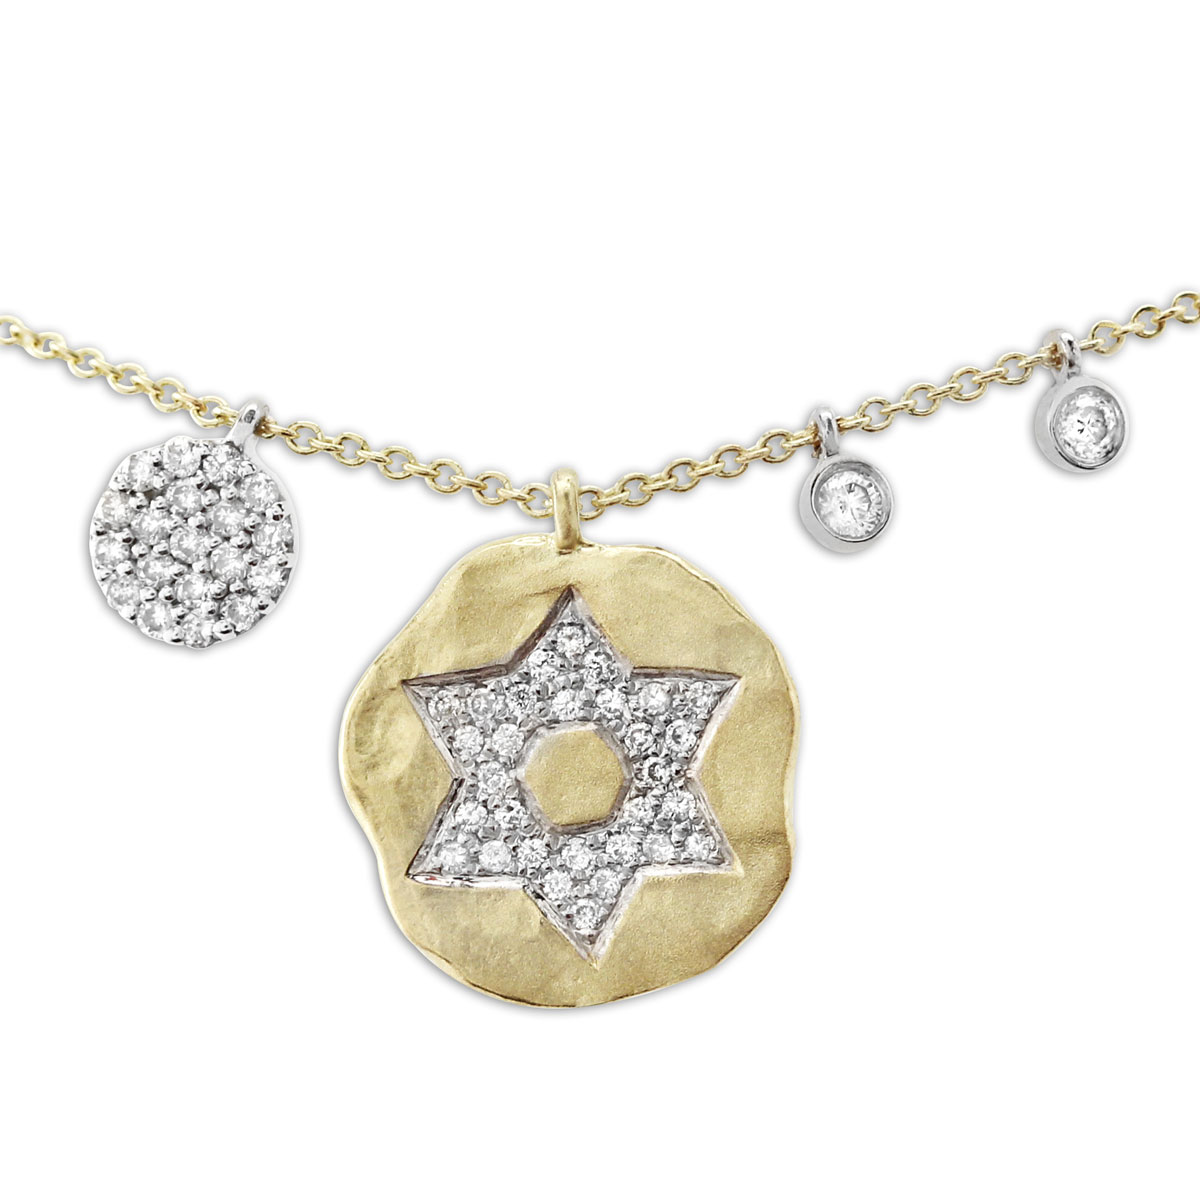 341769-Star Of David Necklace